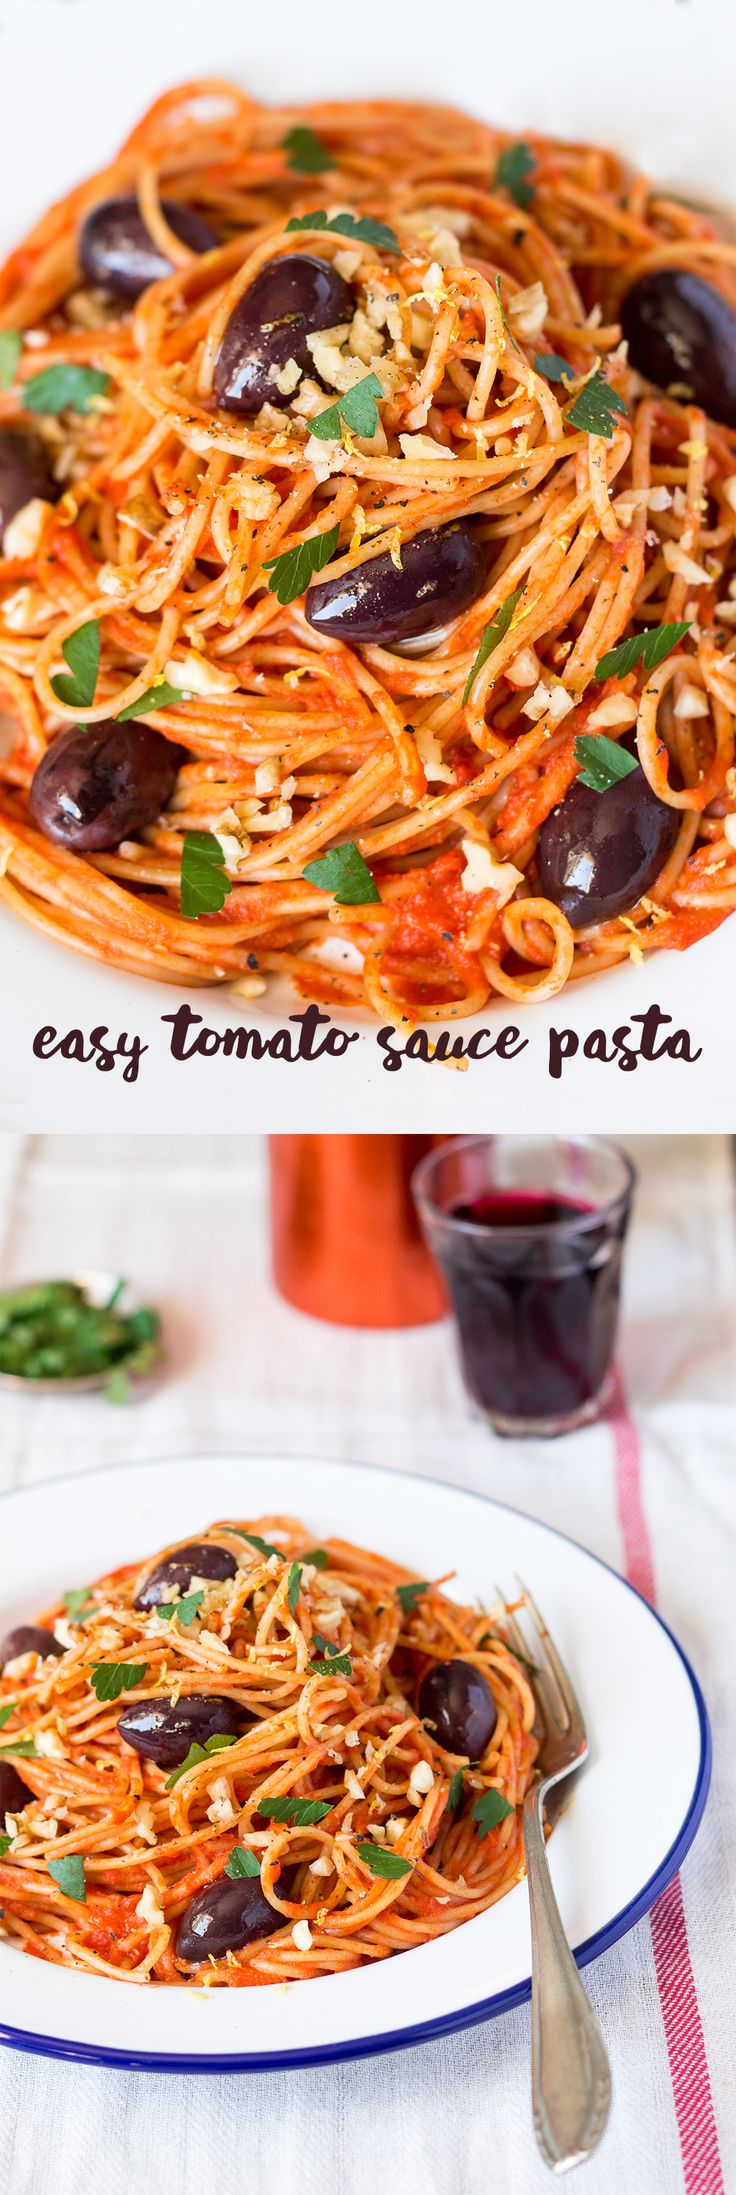 Mondays can be busy enough without planning a complicated dinner. This super easy tomato sauce pasta is an easy vegetarian option which can be easily made gluten free! #MeatFreeMonday